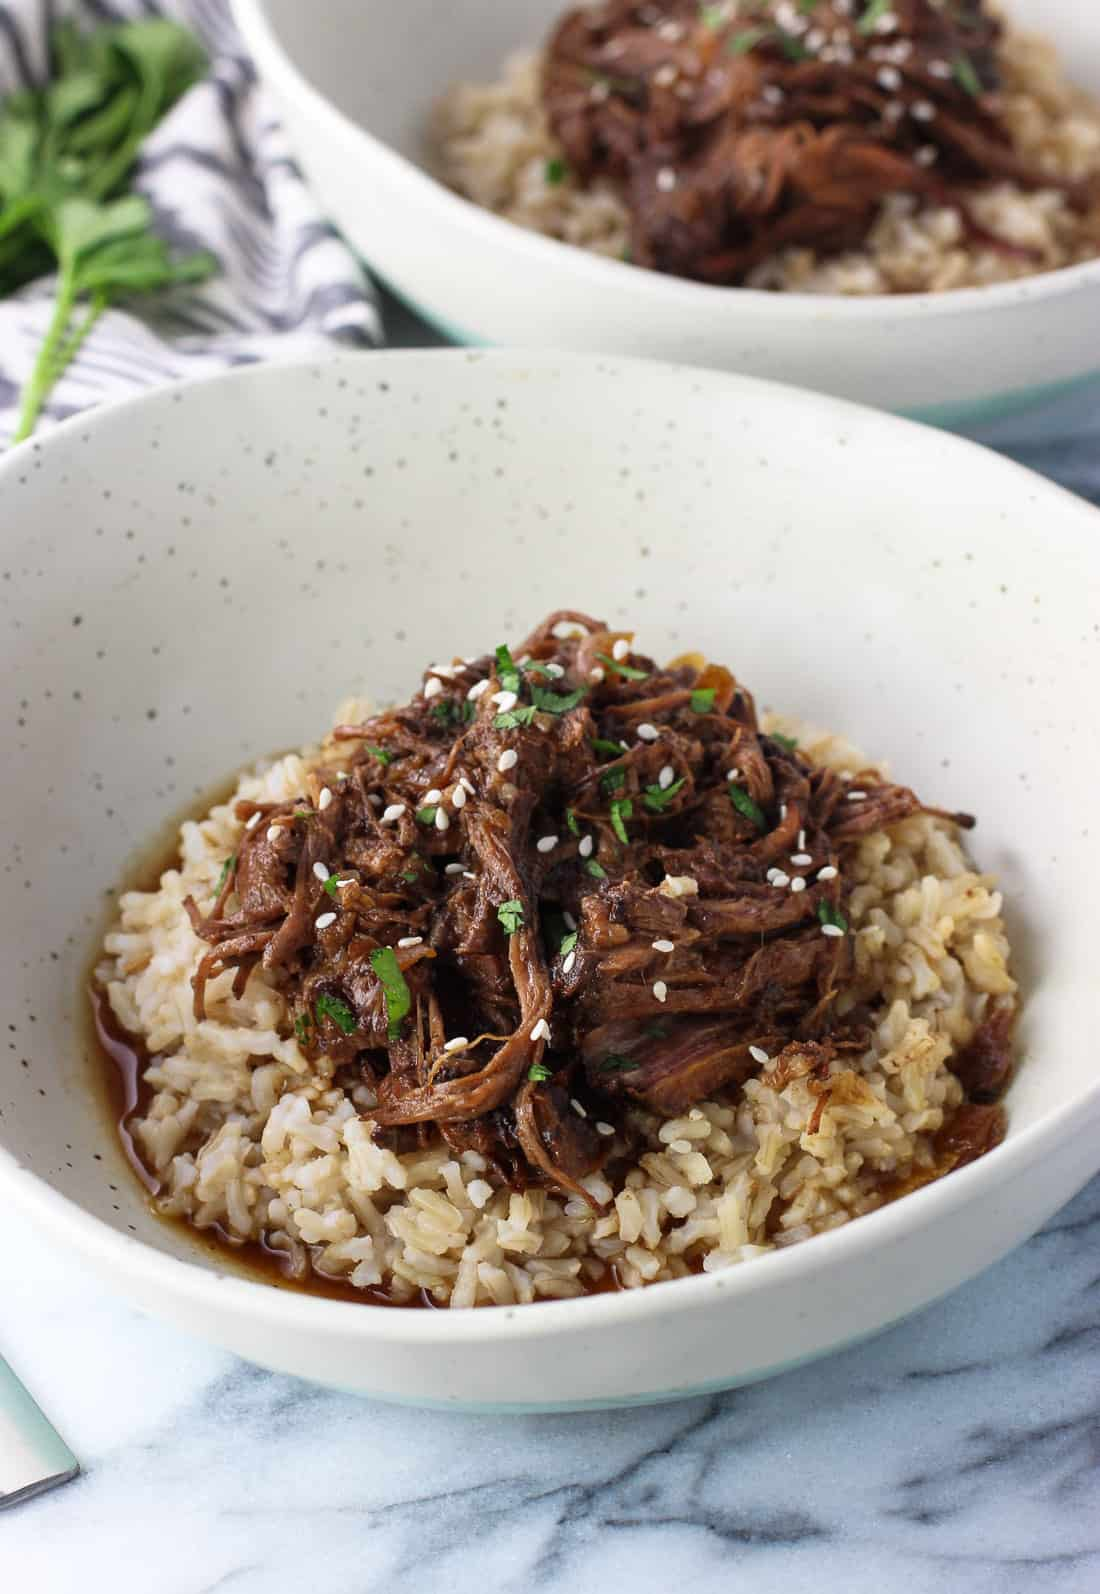 Slow cooker shredded beef is easy to make and versatile to use in sandwiches, over rice or salads, and more! It cooks in a balsamic peanut sauce that tastes amazing made in the crock pot.